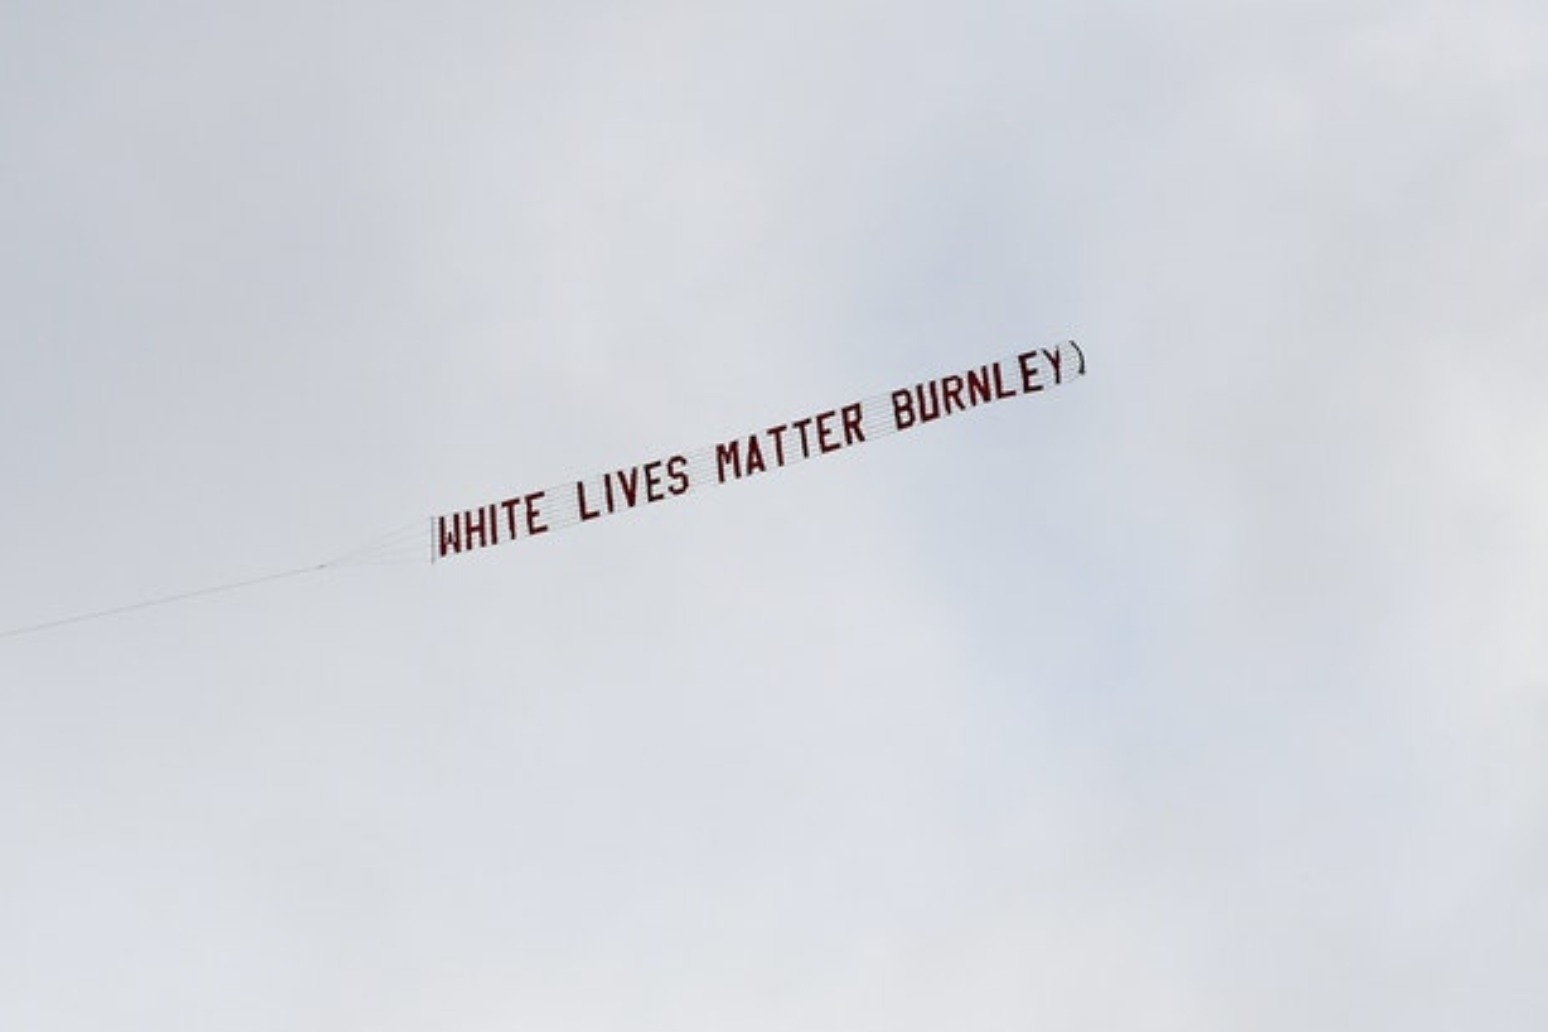 Burnley players 'ashamed and embarrassed' by plane banner says captain Ben Mee